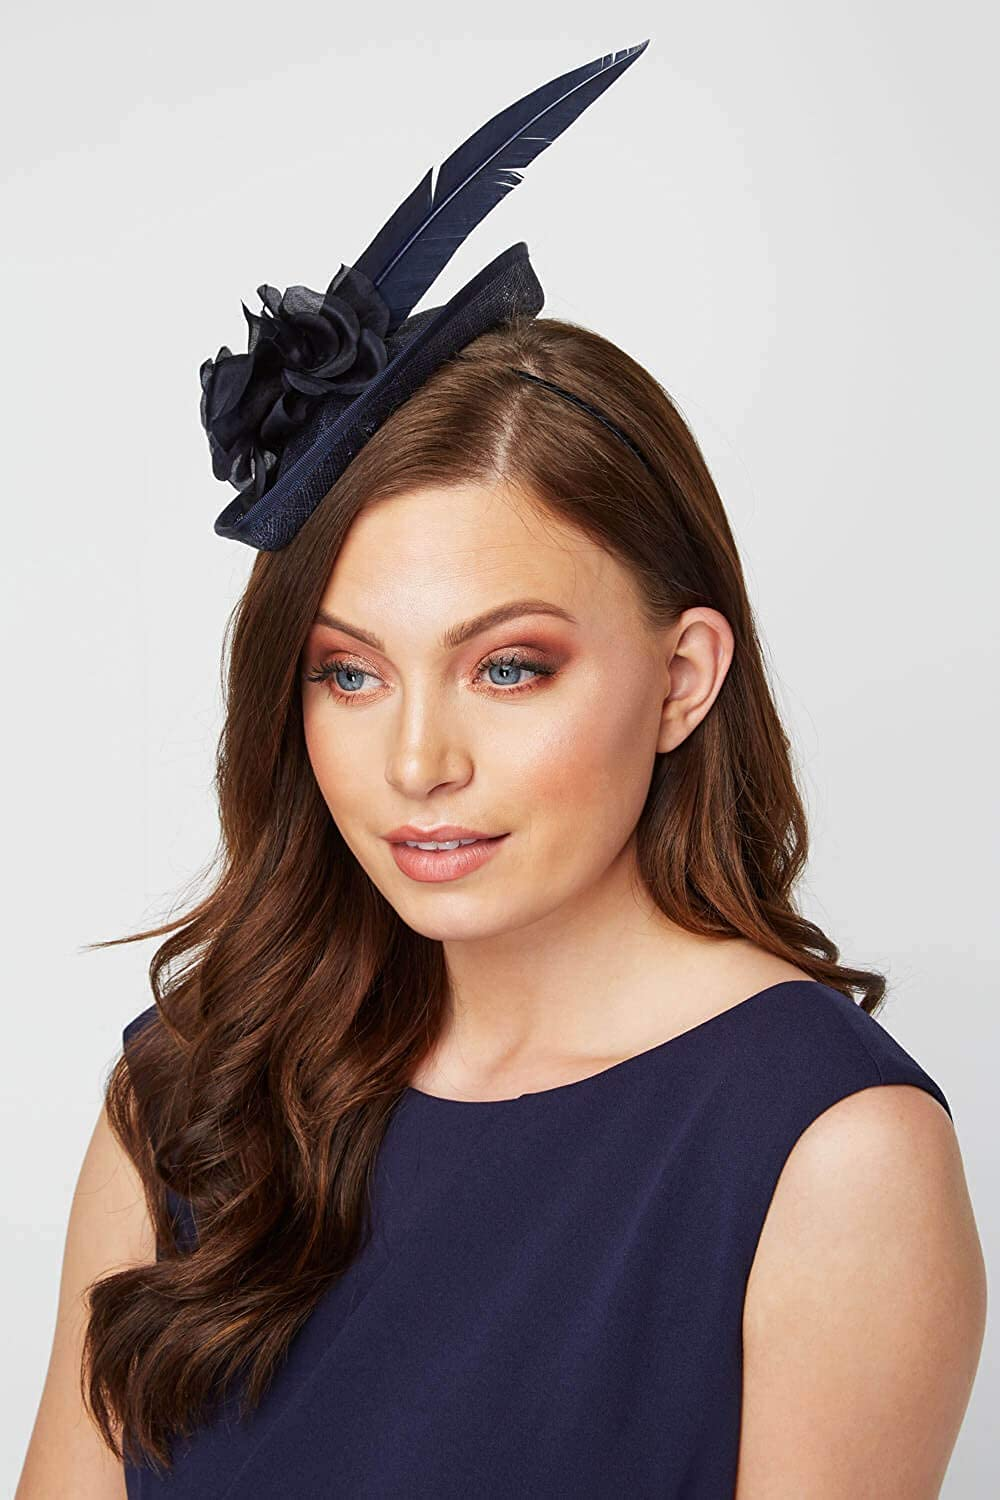 Roman Originals Women Pan Rose /& Feather Fascinator Ladies Smart Summer Holiday Evening Special Occasions Race Day Mother of The Bride Groom Wedding Guest Hat